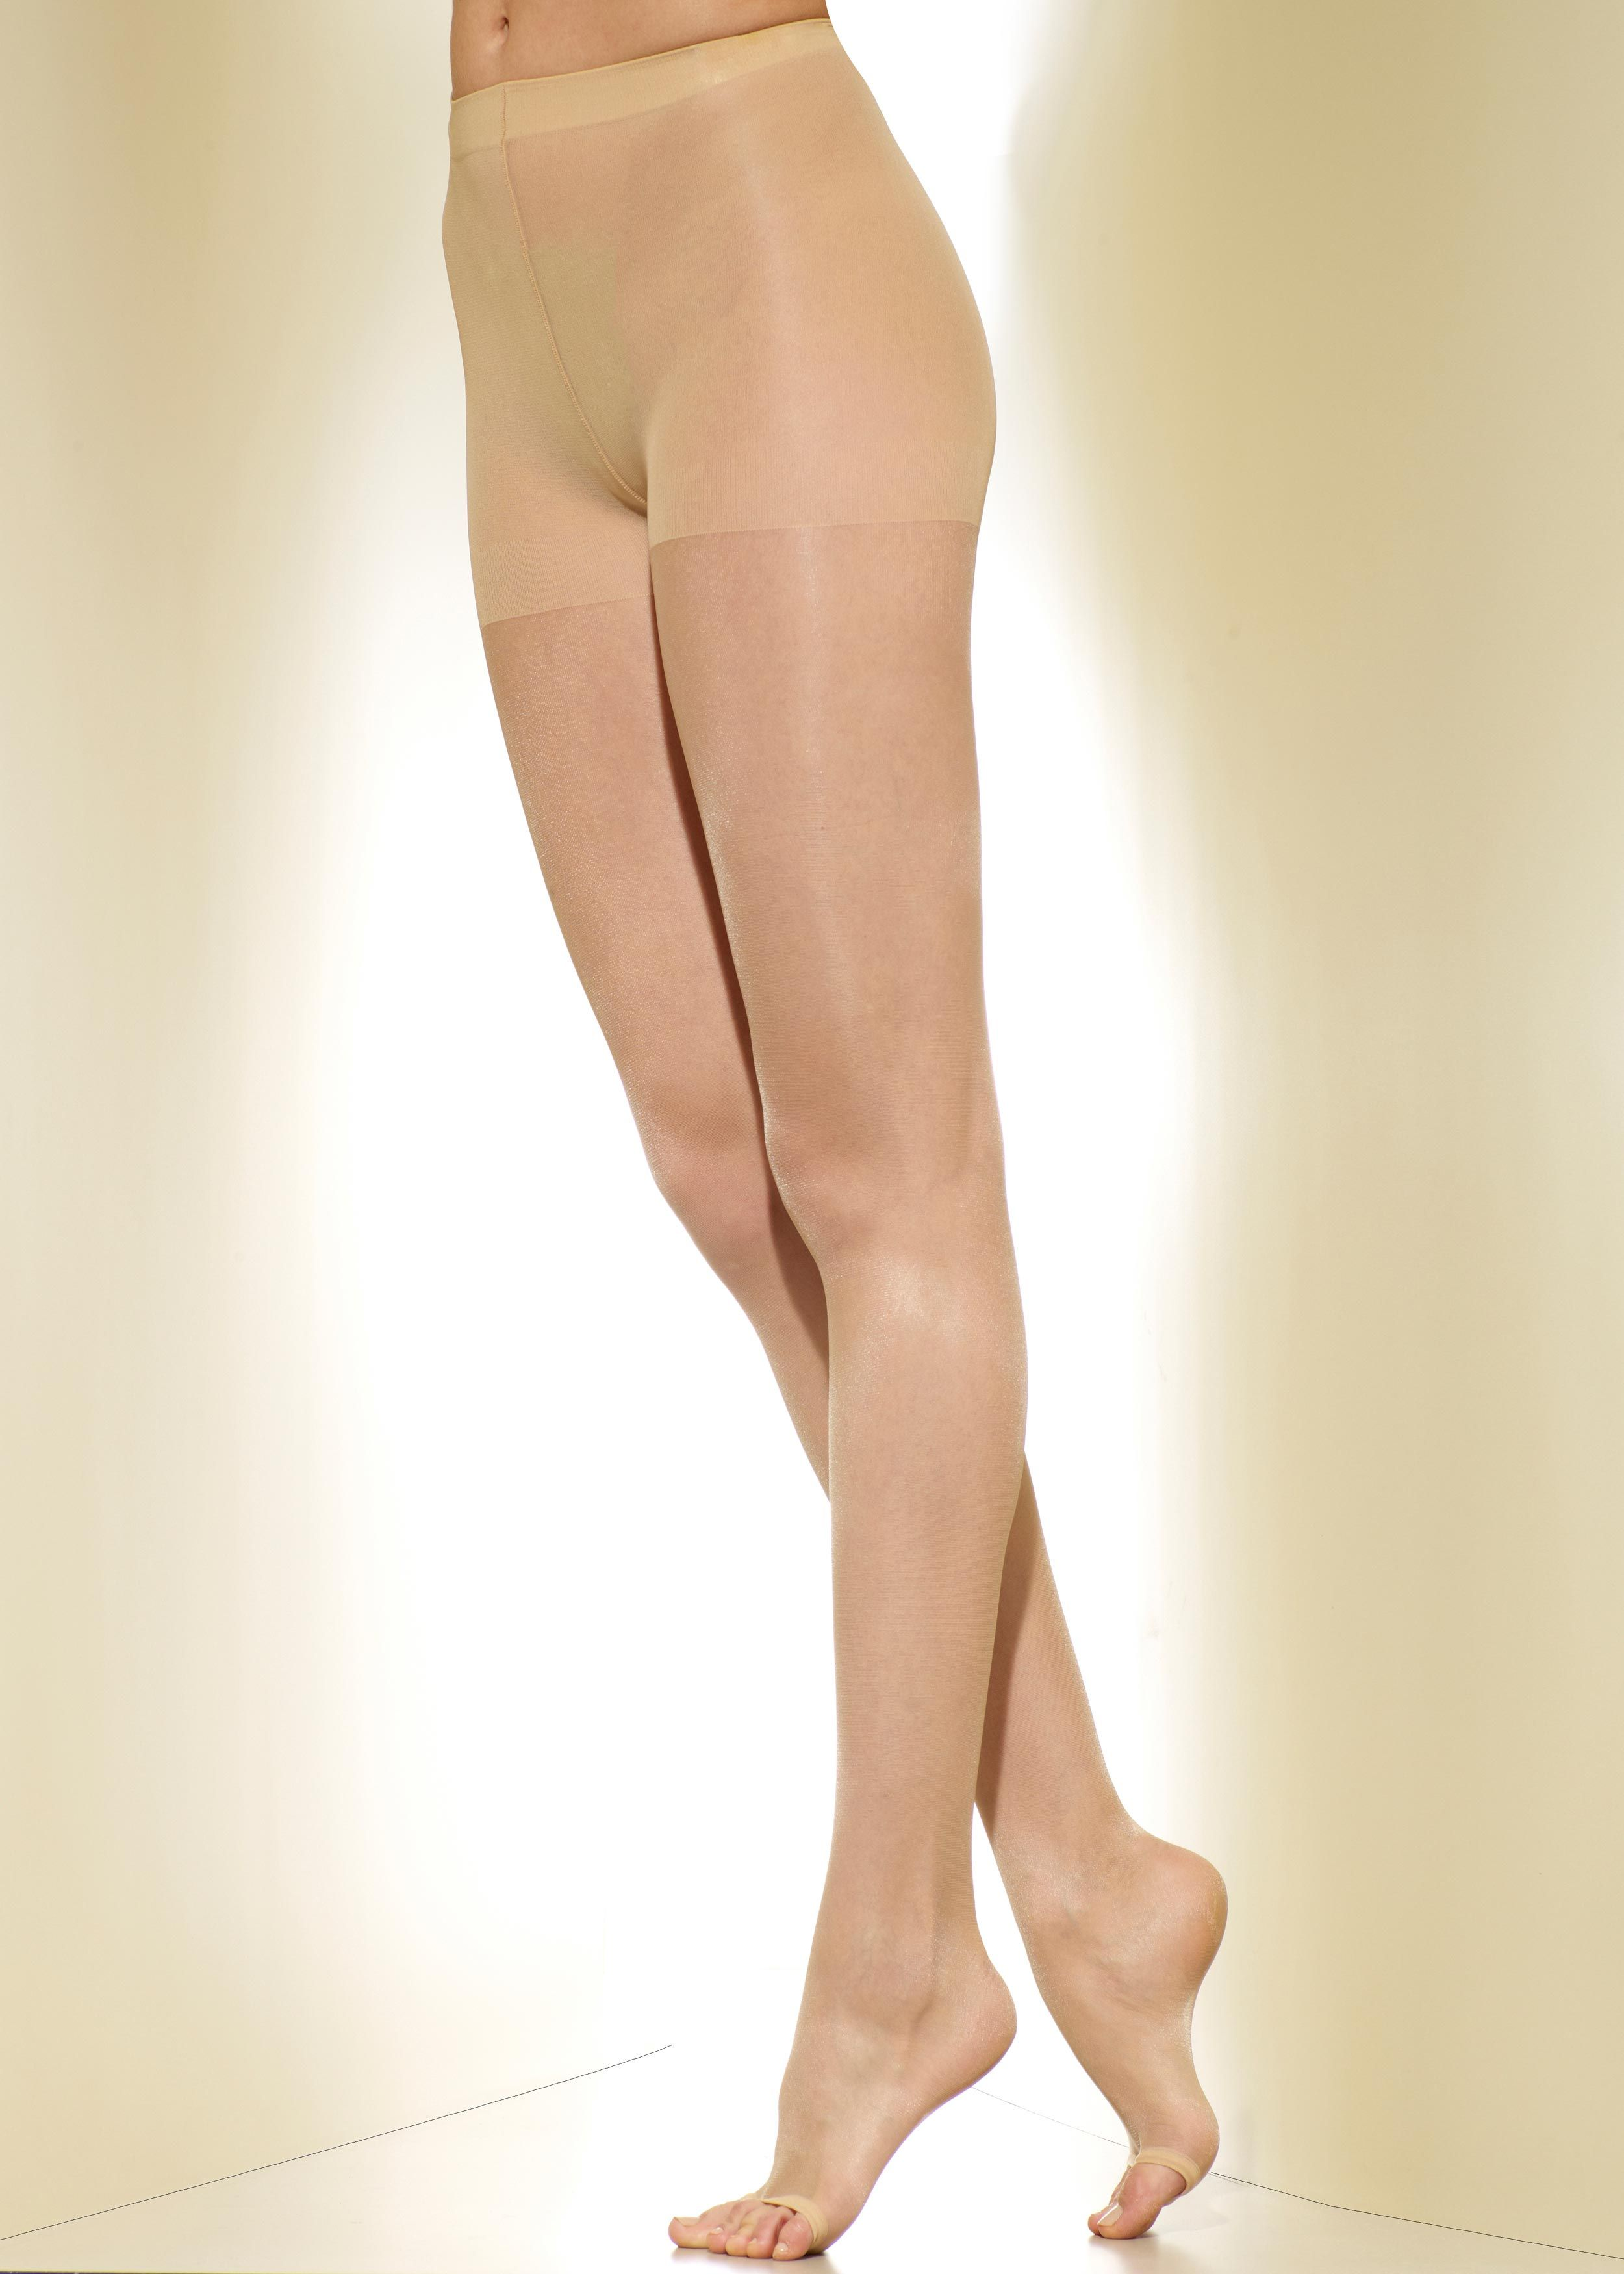 Who invented control top pantyhose